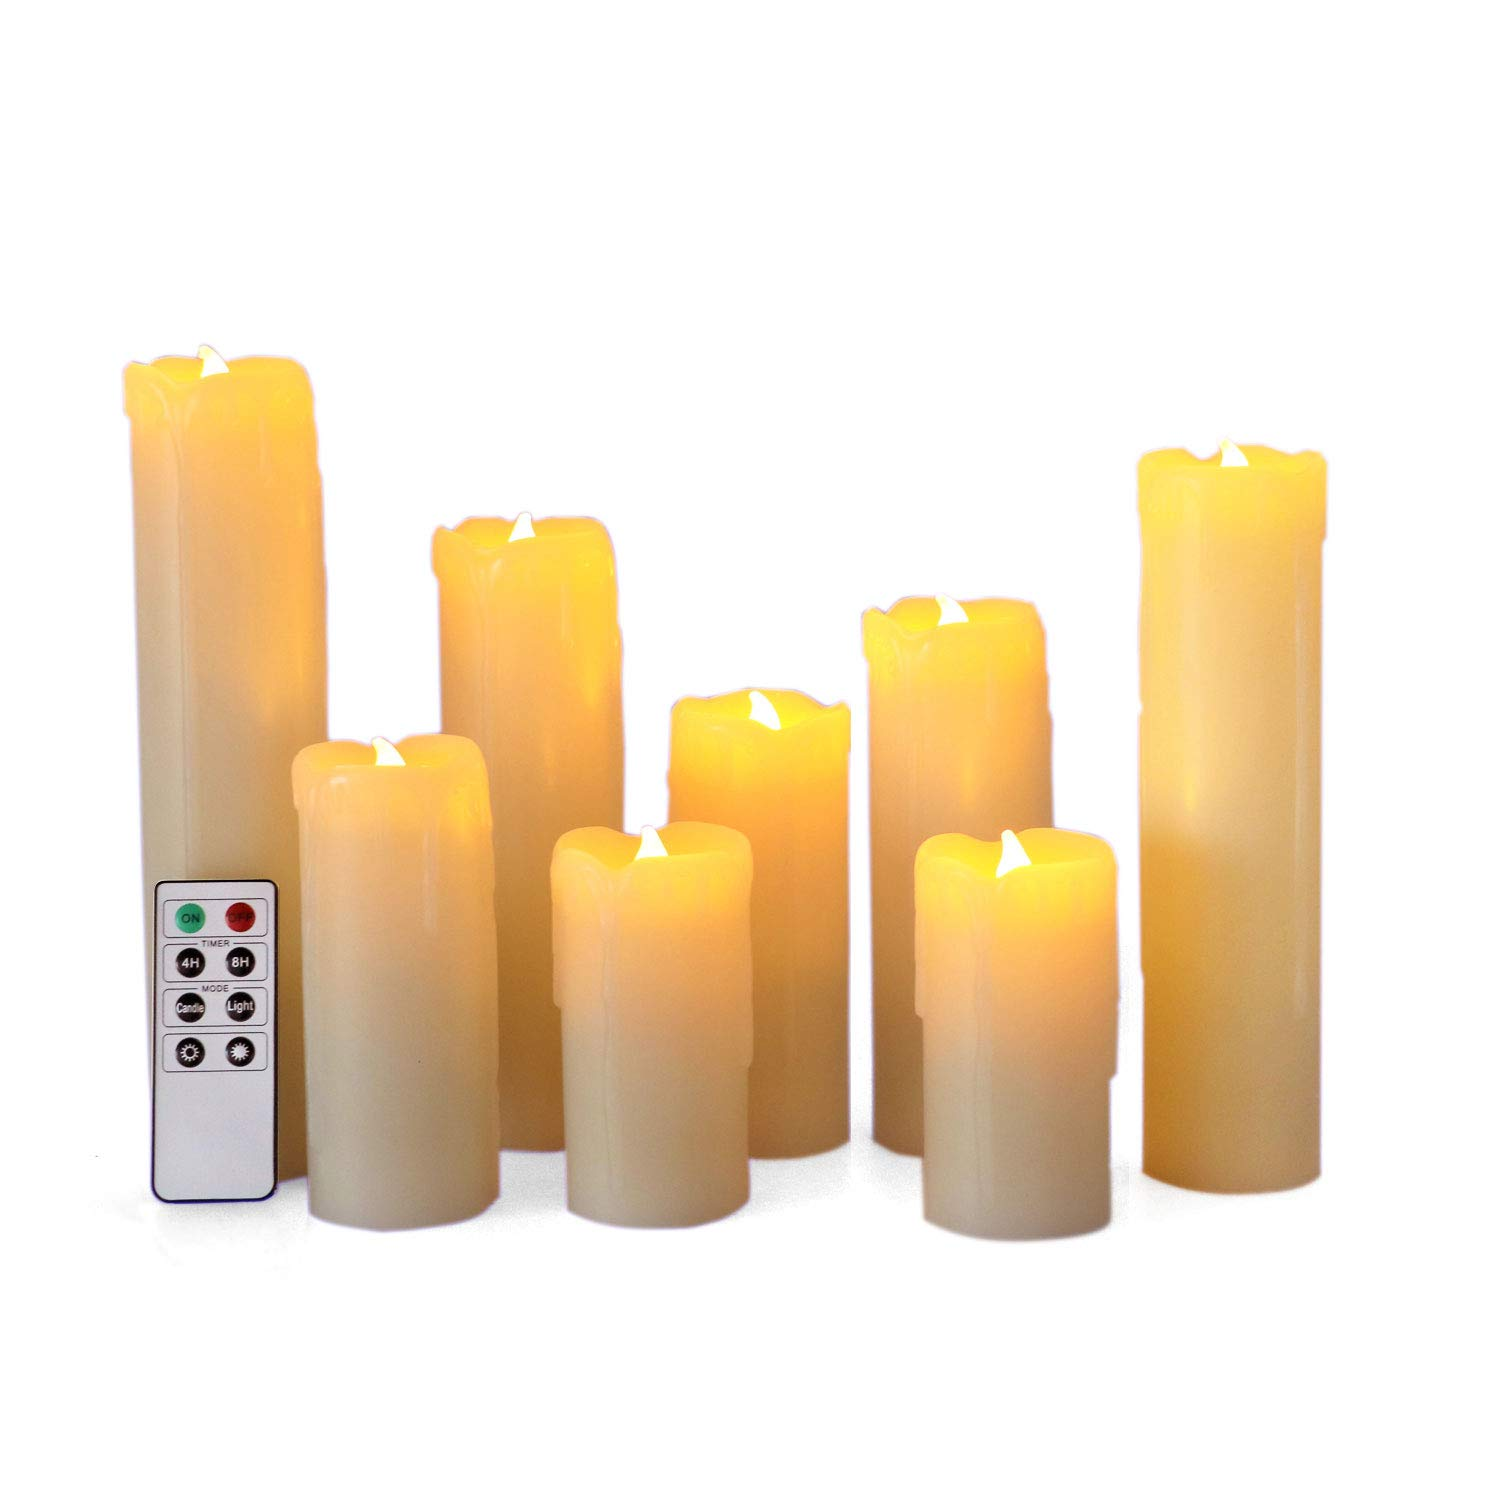 Set of 8 Flameless LED Candles with Timer, Battery Operated Candles with Remote Control, Ivory Wax Drip Finish, H4''/5''/6''/7''/8'', Long Lasting Batteies Included by Rhytsing (Image #1)